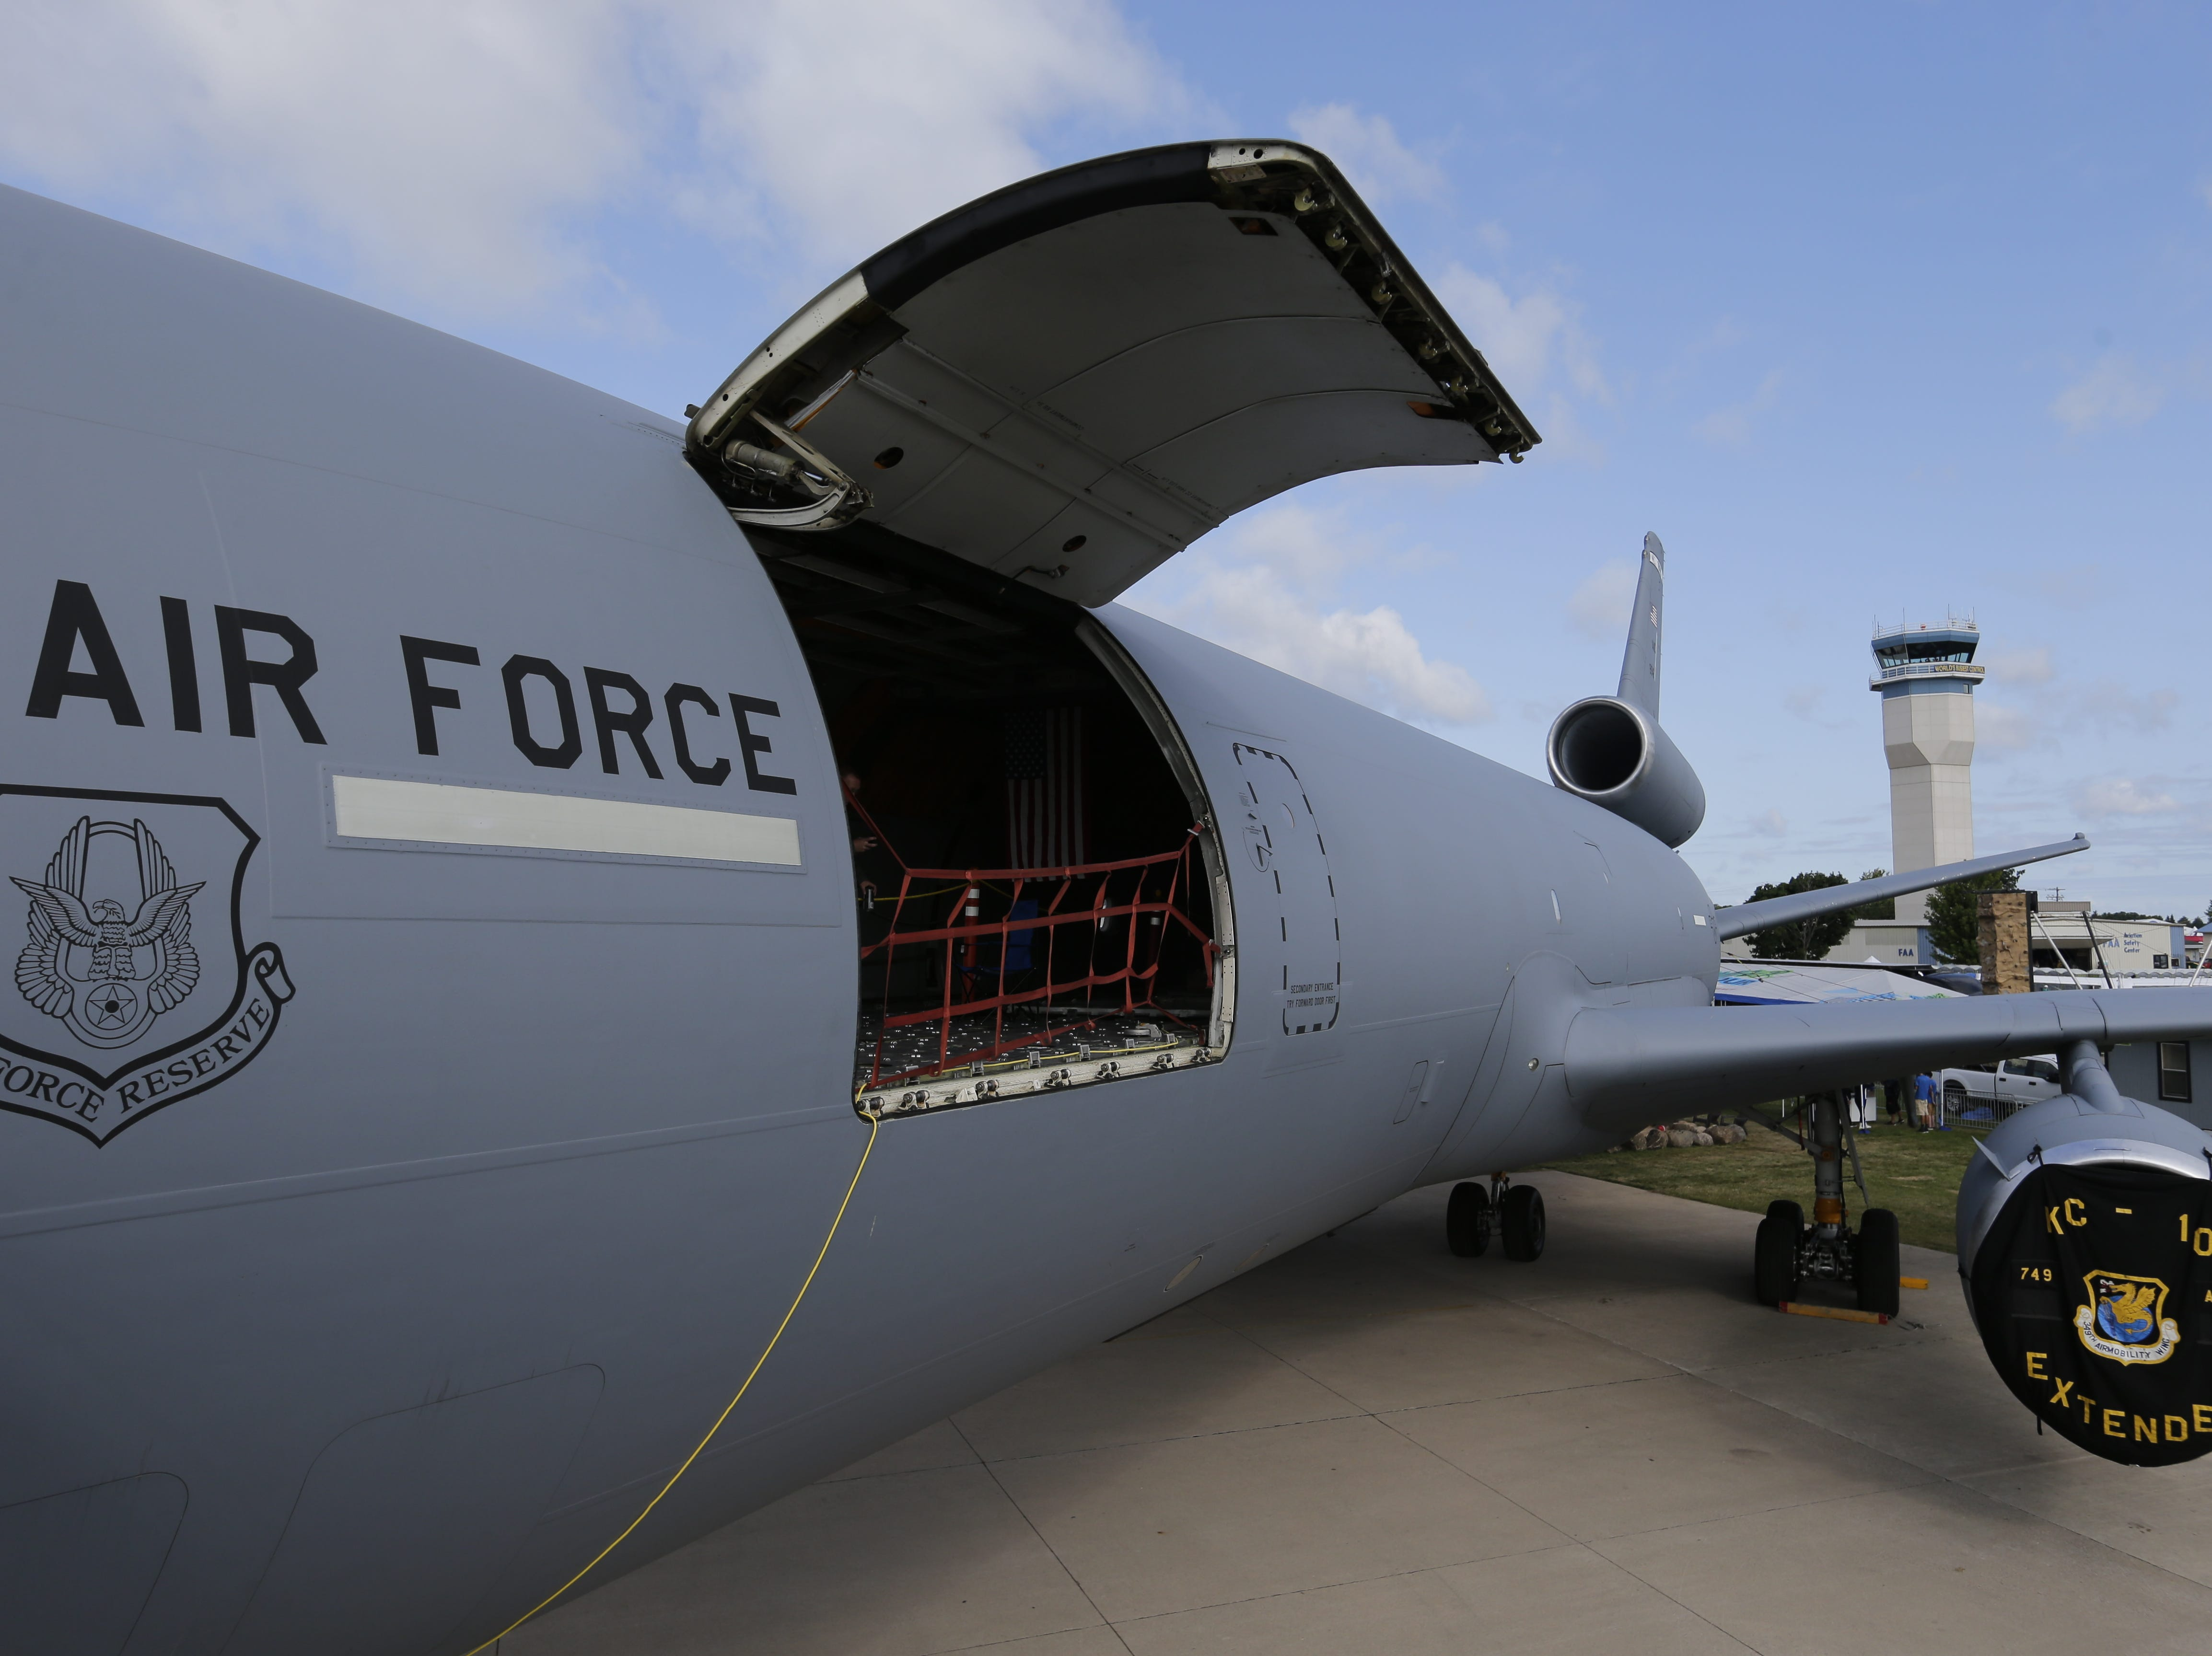 The McDonnell Douglas KC-10 Extender is on display in Boeing Plaza, Friday, July 27, 2018, in Oshkosh, Wis.  The 66th annual Experimental Aircraft Association Fly-In Convention, AirVenture 2018 draws over 500,000 people and over 10,000 planes from more than 70 nations annually to the area.  The convention runs through July 29.Joe Sienkiewicz/USA Today NETWORK-Wisconsin